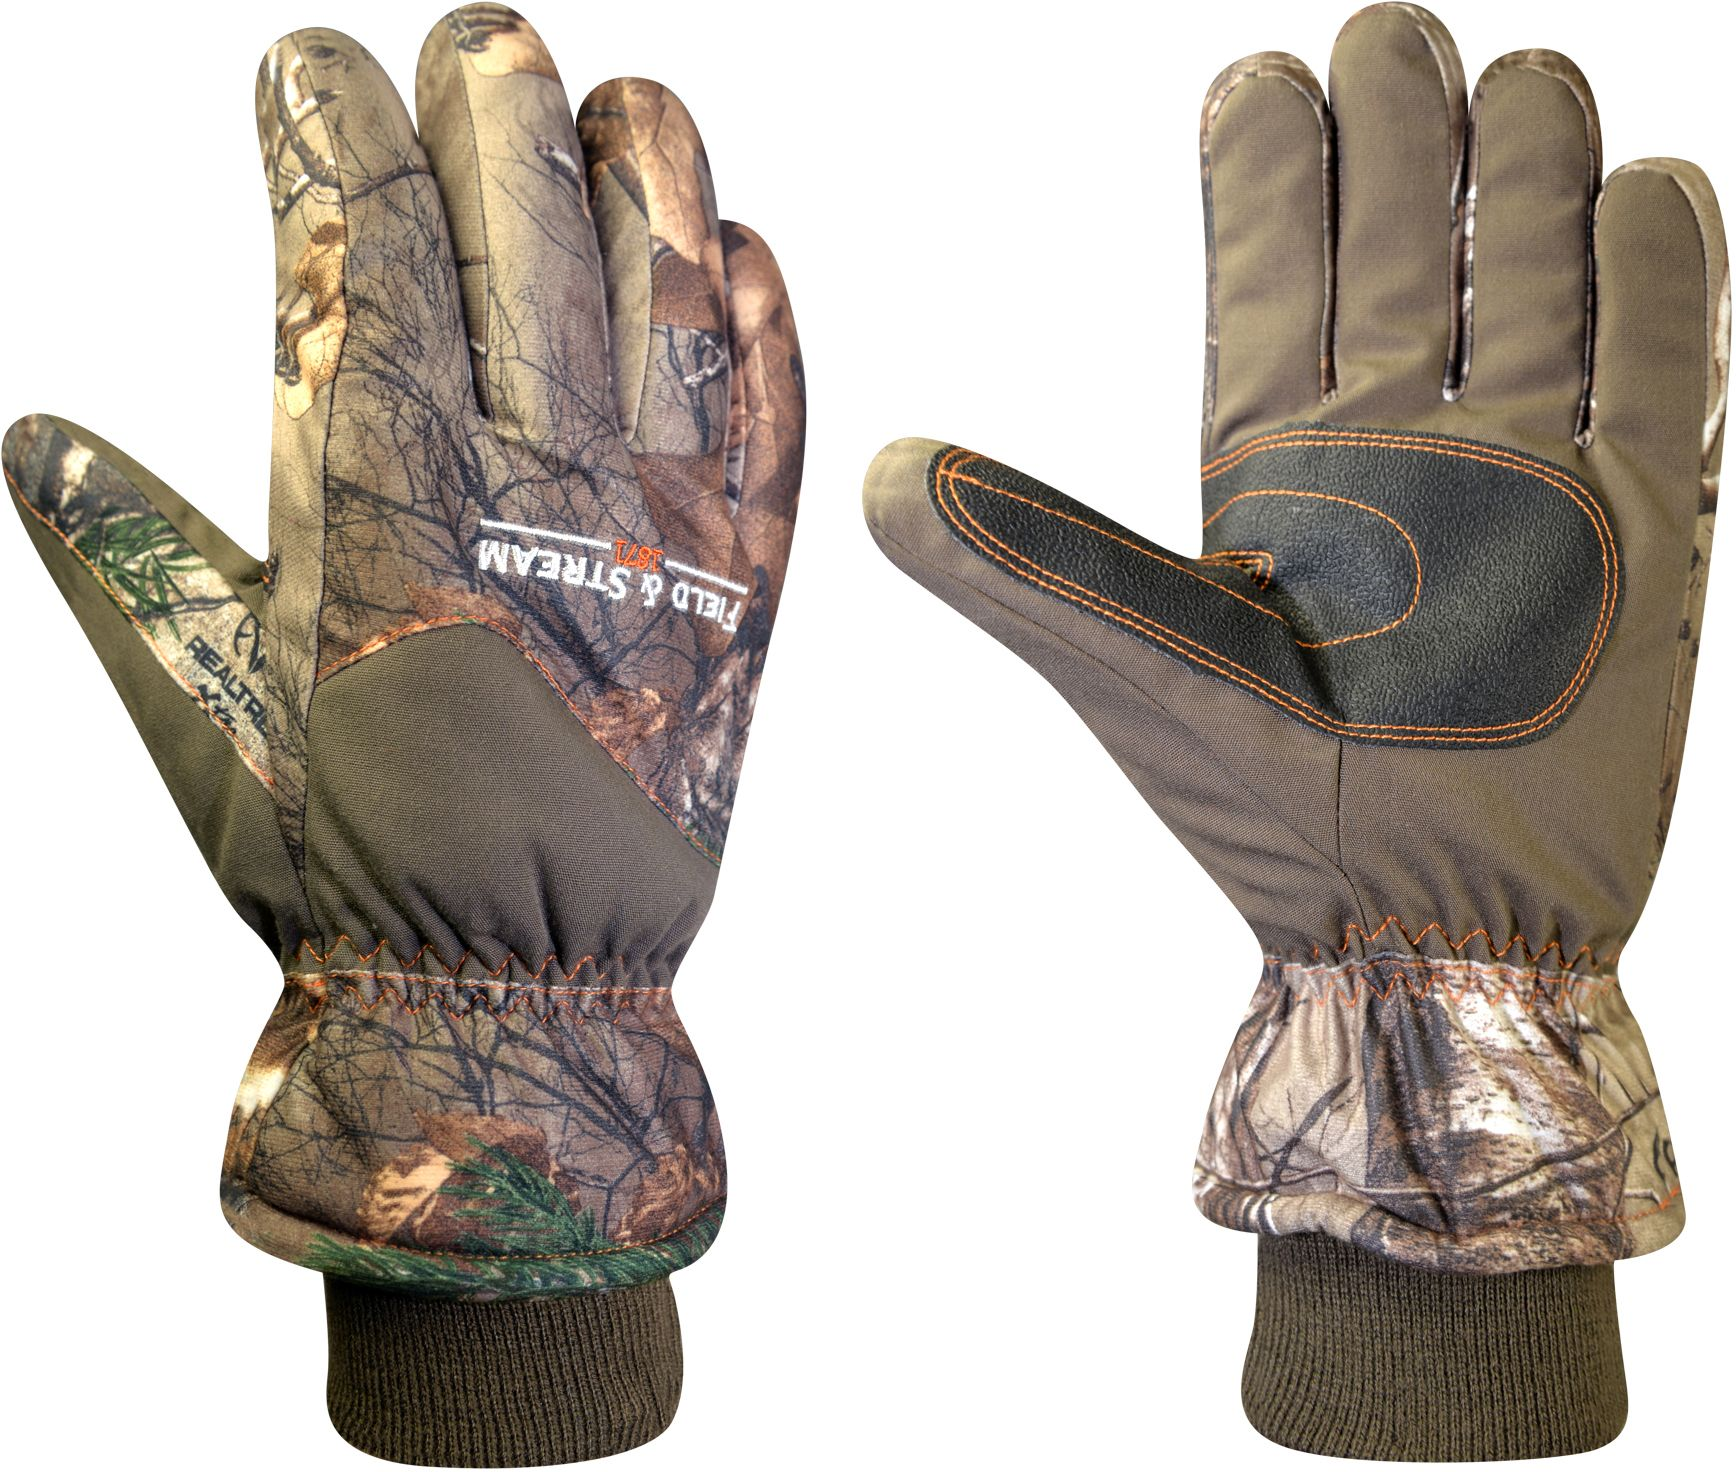 Field & Stream Youth True Pursuit Insulated Hunting Gloves, Kids Unisex, Size: Small, Brown thumbnail